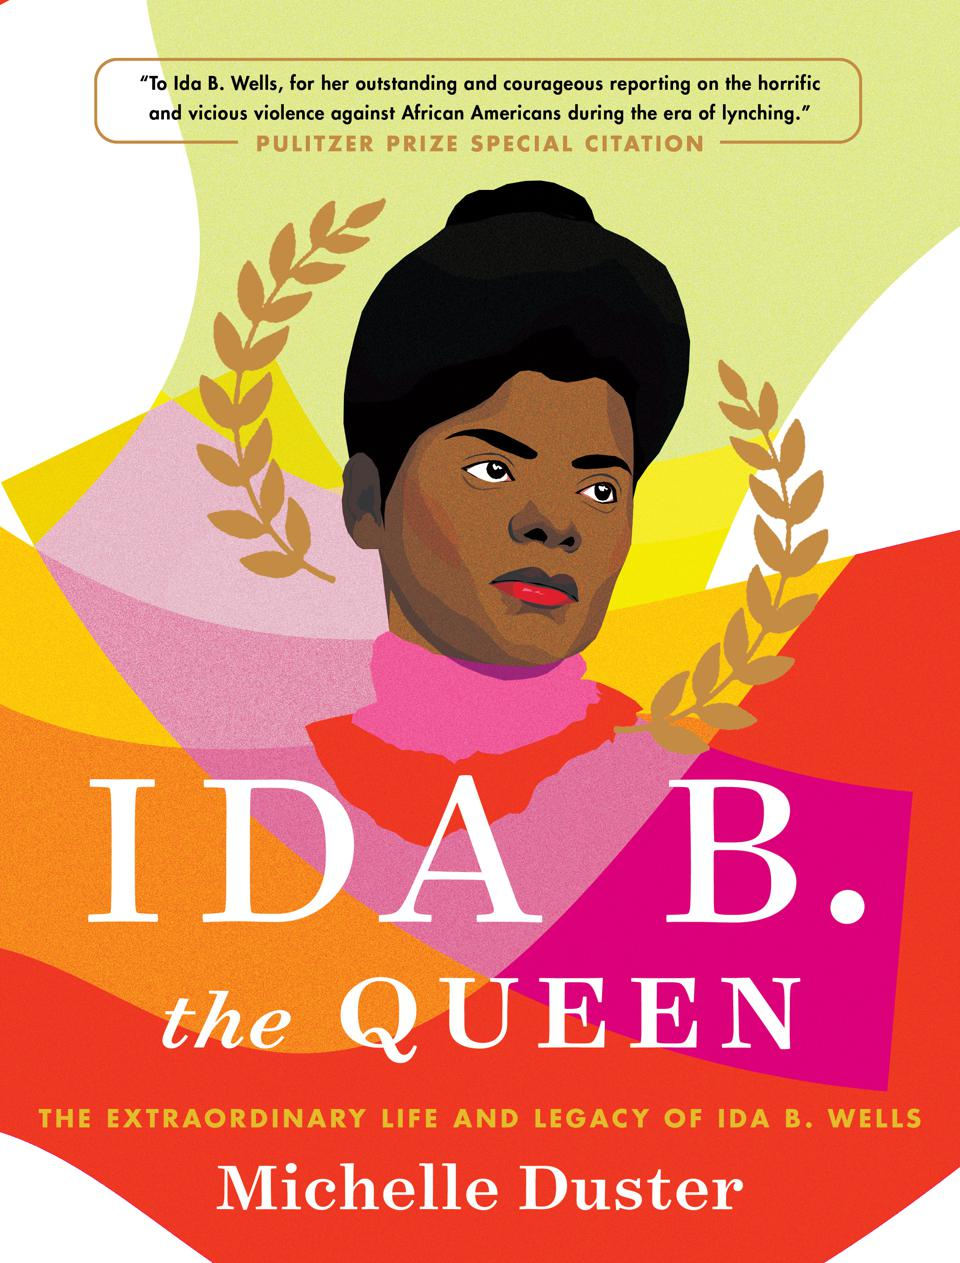 ida b the queen michelle duster biography book cover wells pulitzer prize special citation